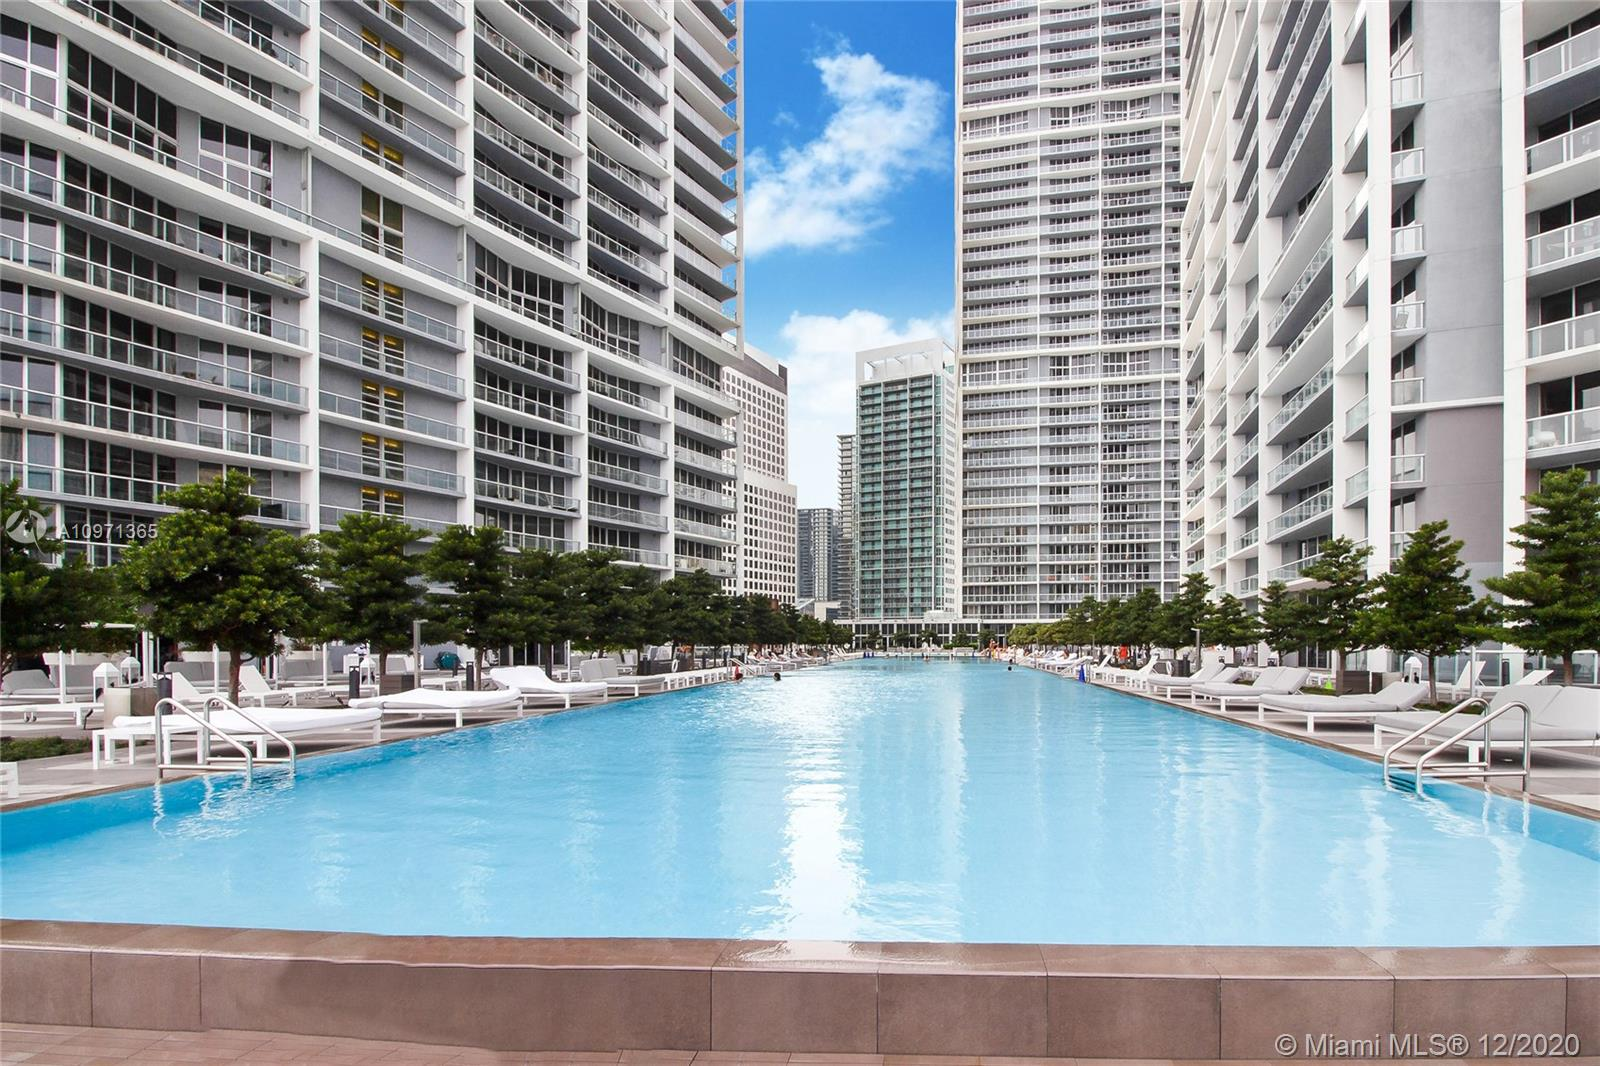 Icon Brickell 1 #614 - 475 Brickell Ave #614, Miami, FL 33131